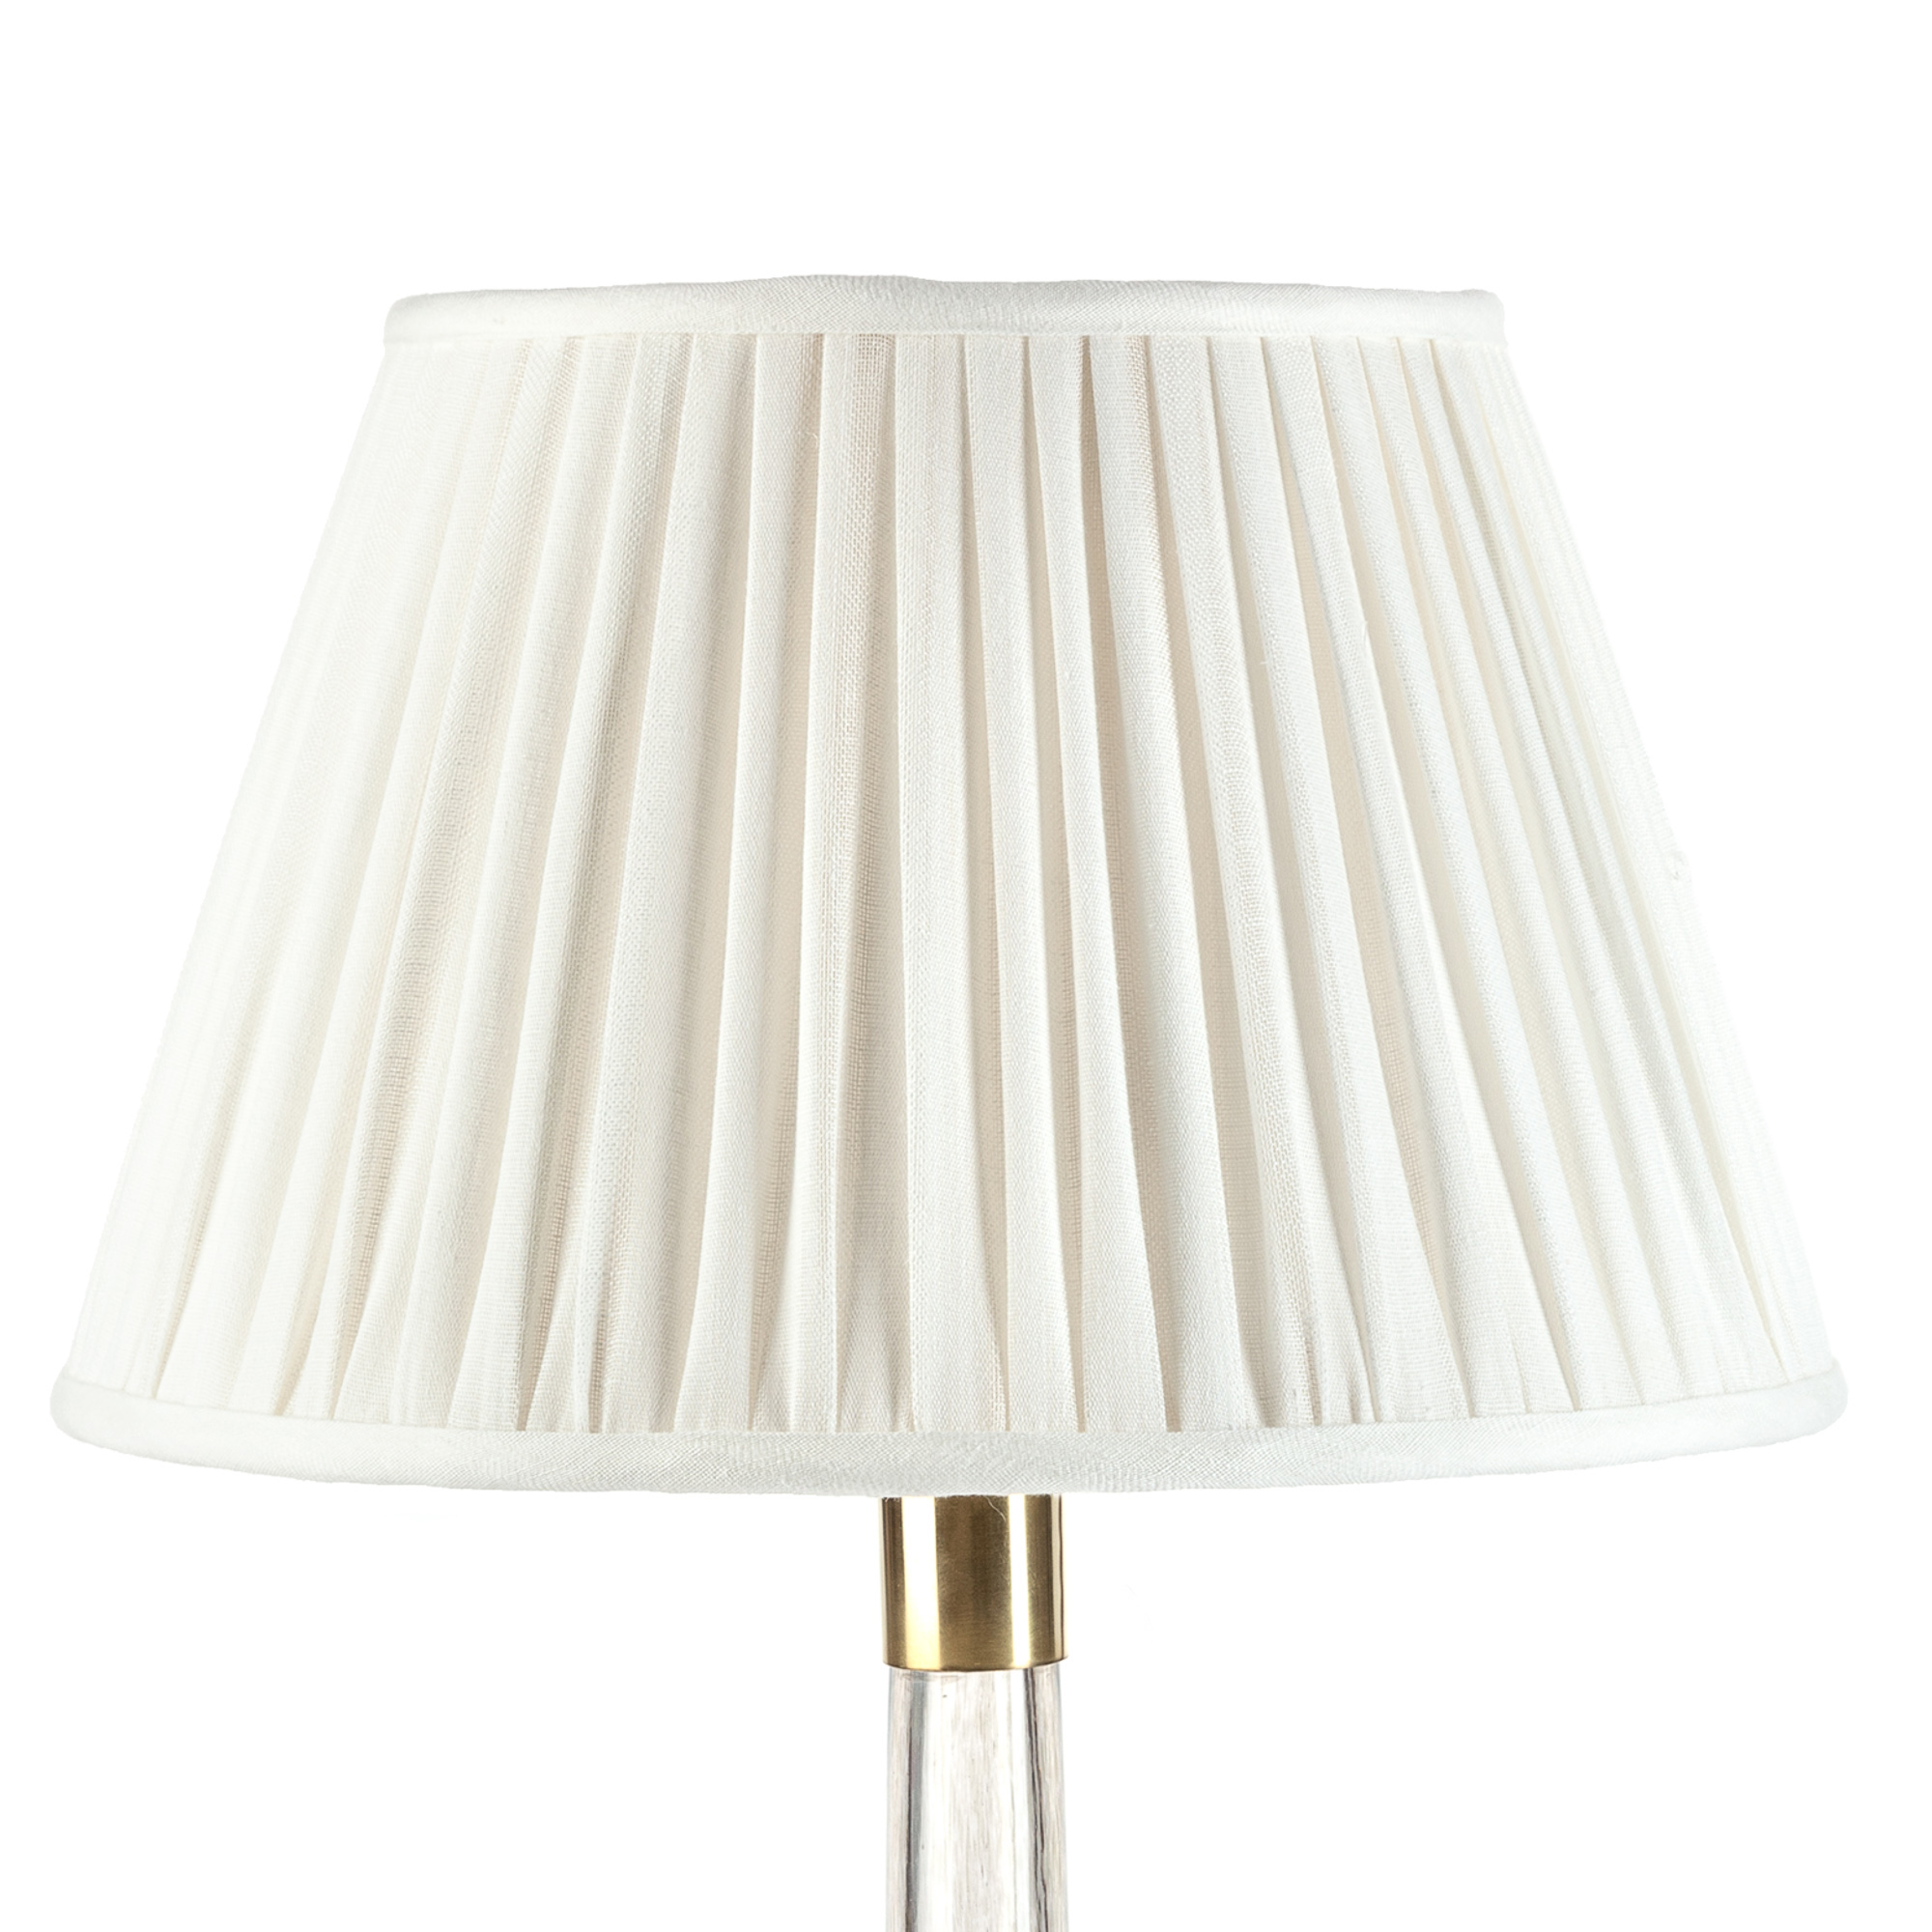 Fabric Bell-Shaped Lamp Shade In Beige by Glenwood Designs